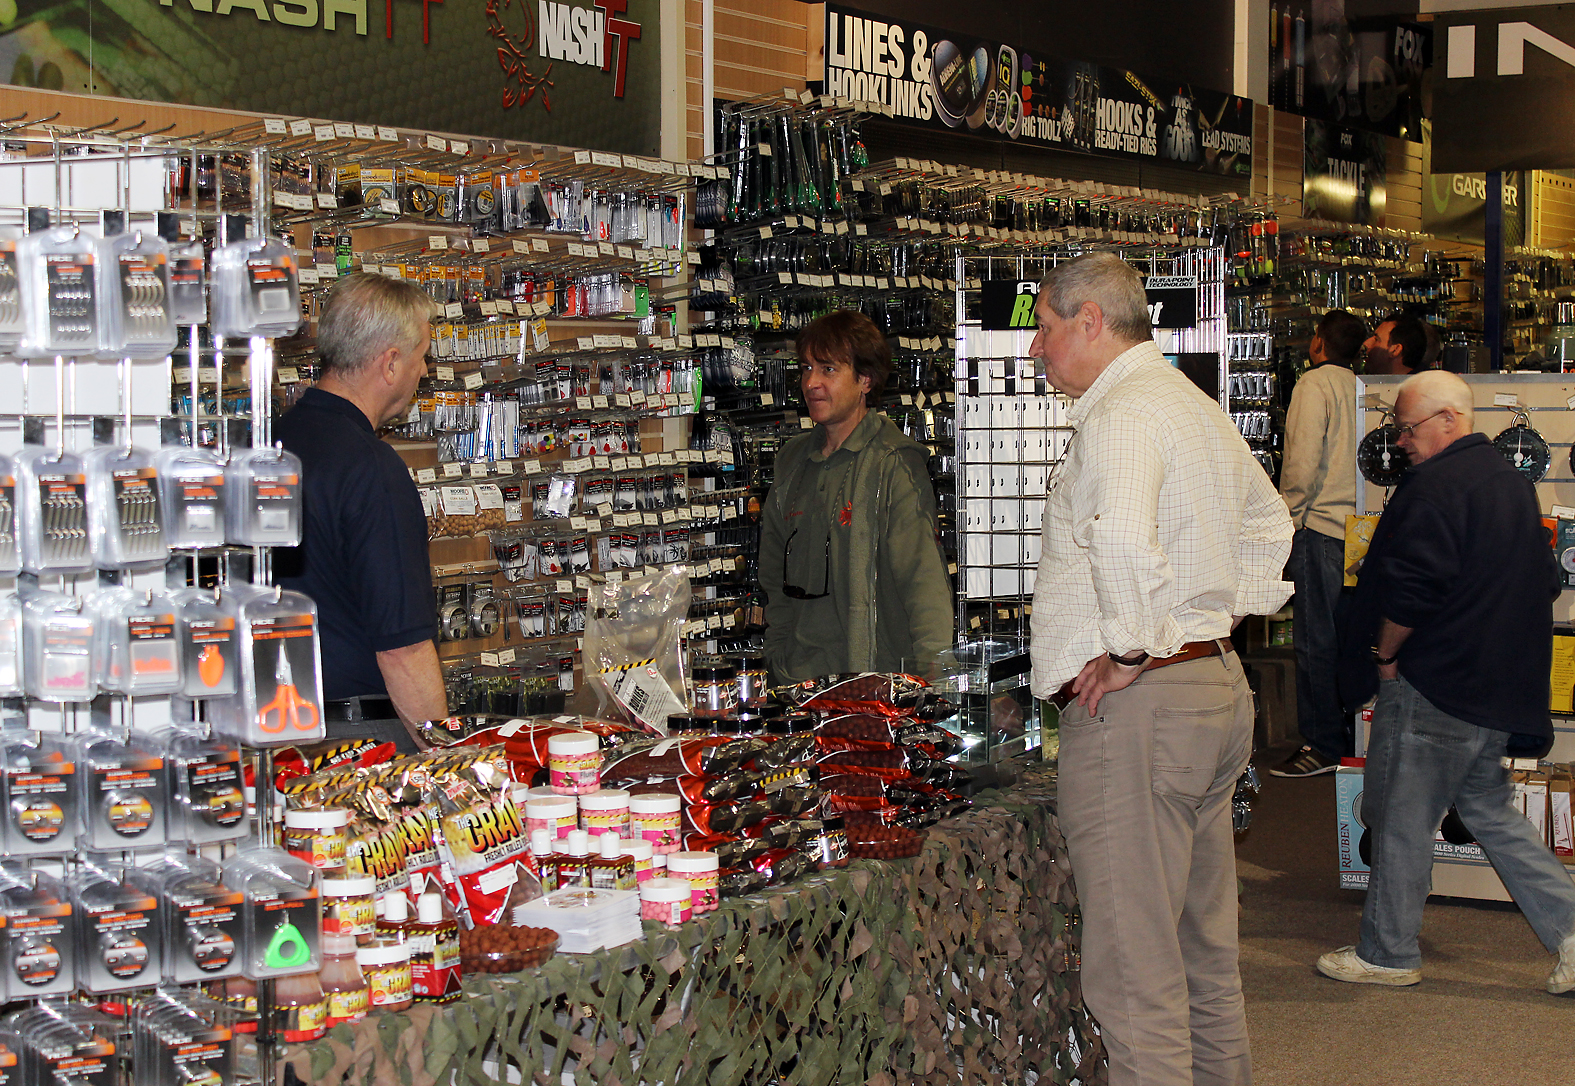 Angling Direct's star for the day, Terry Hearn (centre), gets ready for the crowds!